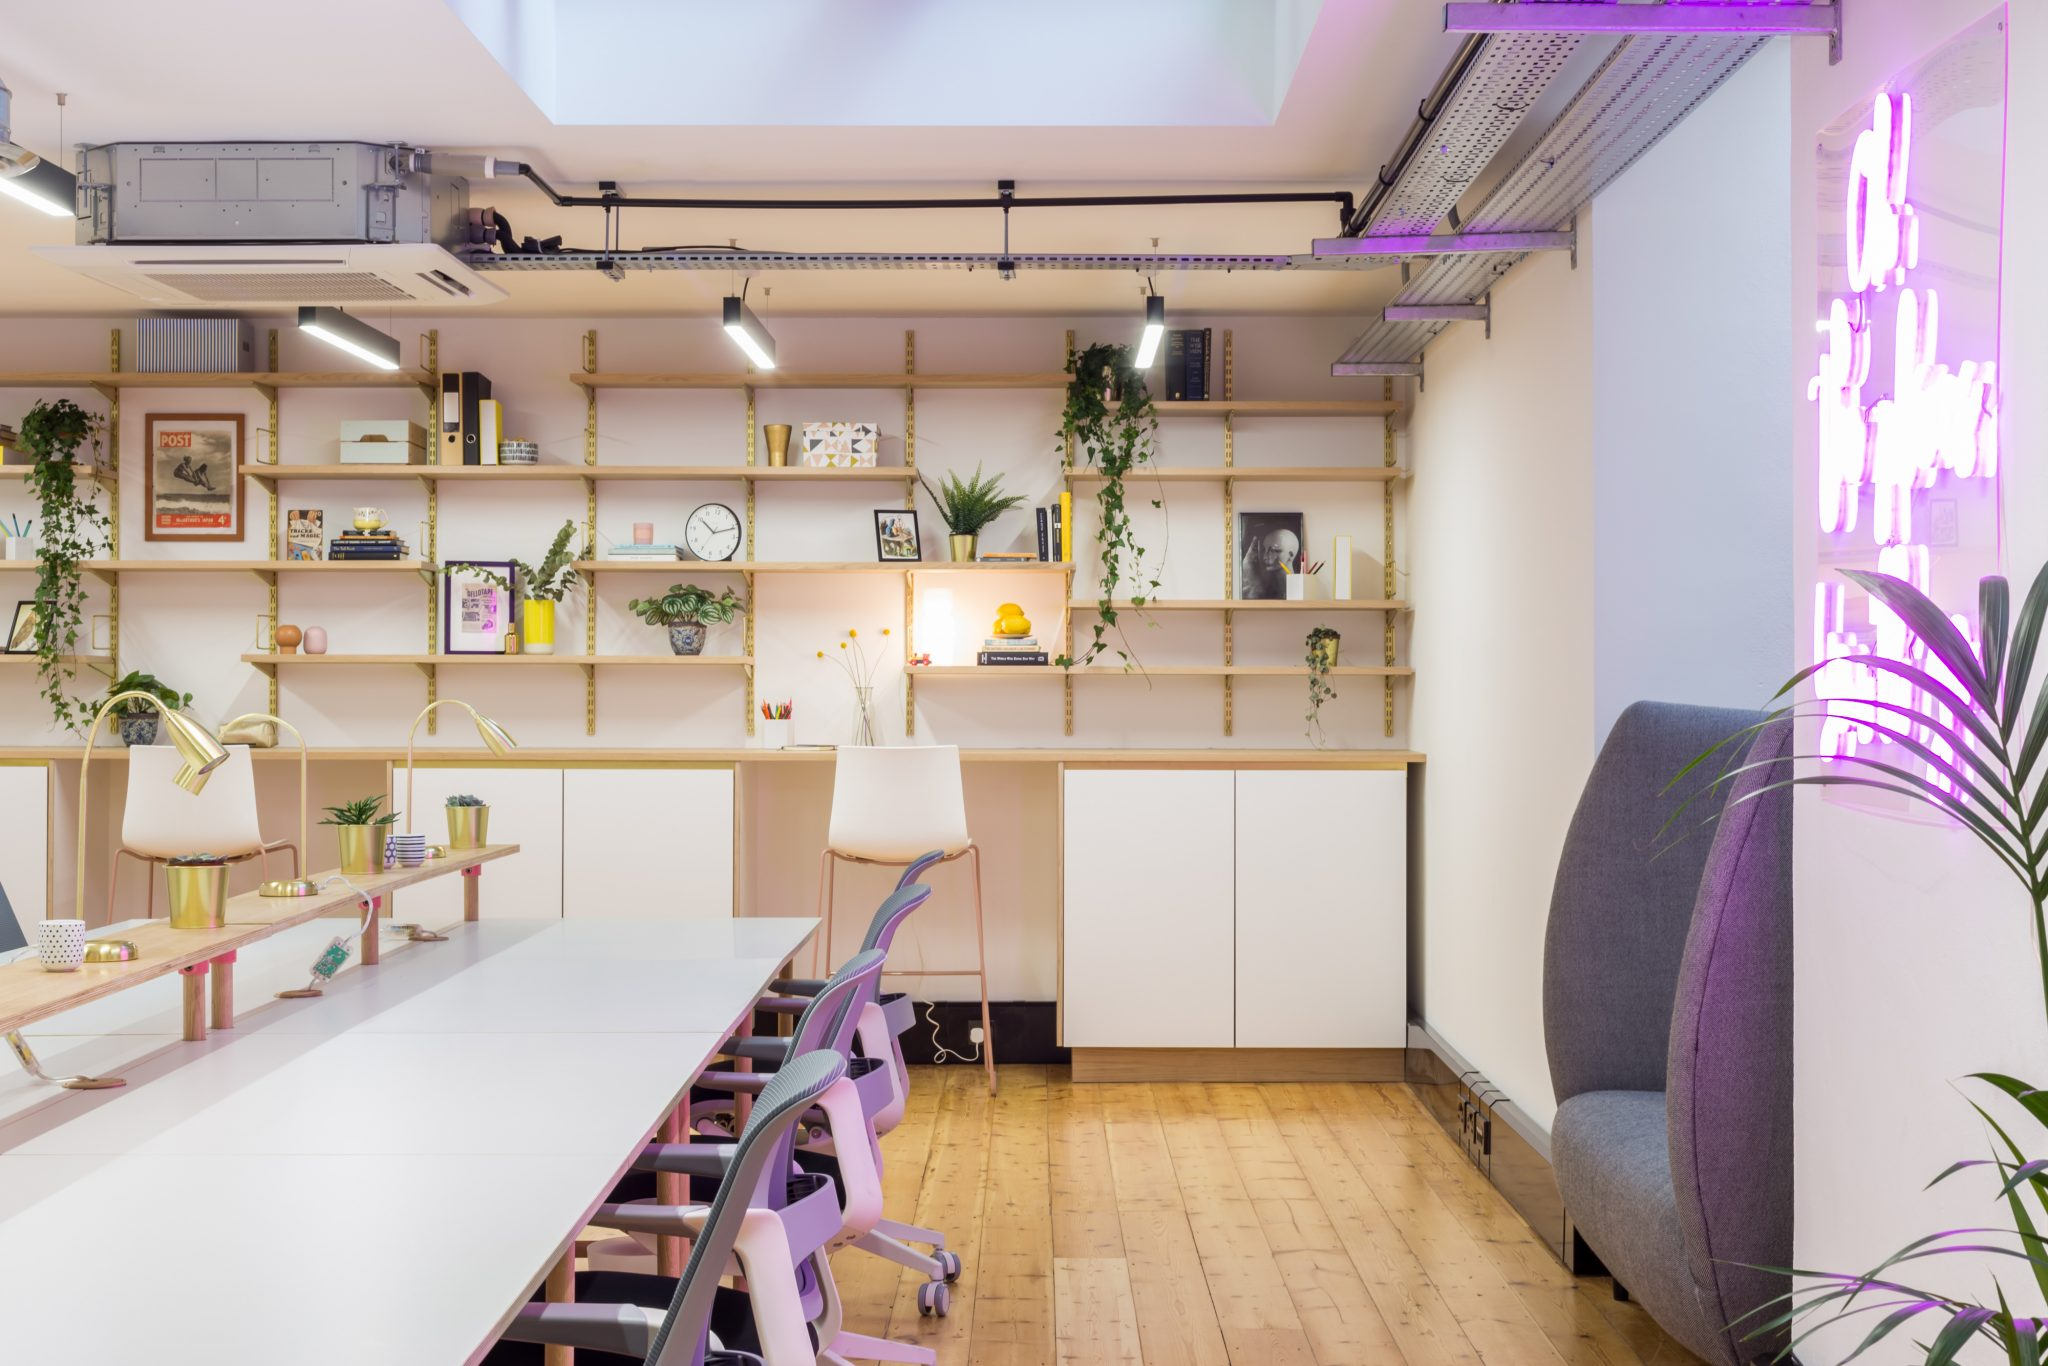 The Cuckooz Nest coworking space in London has childcare.